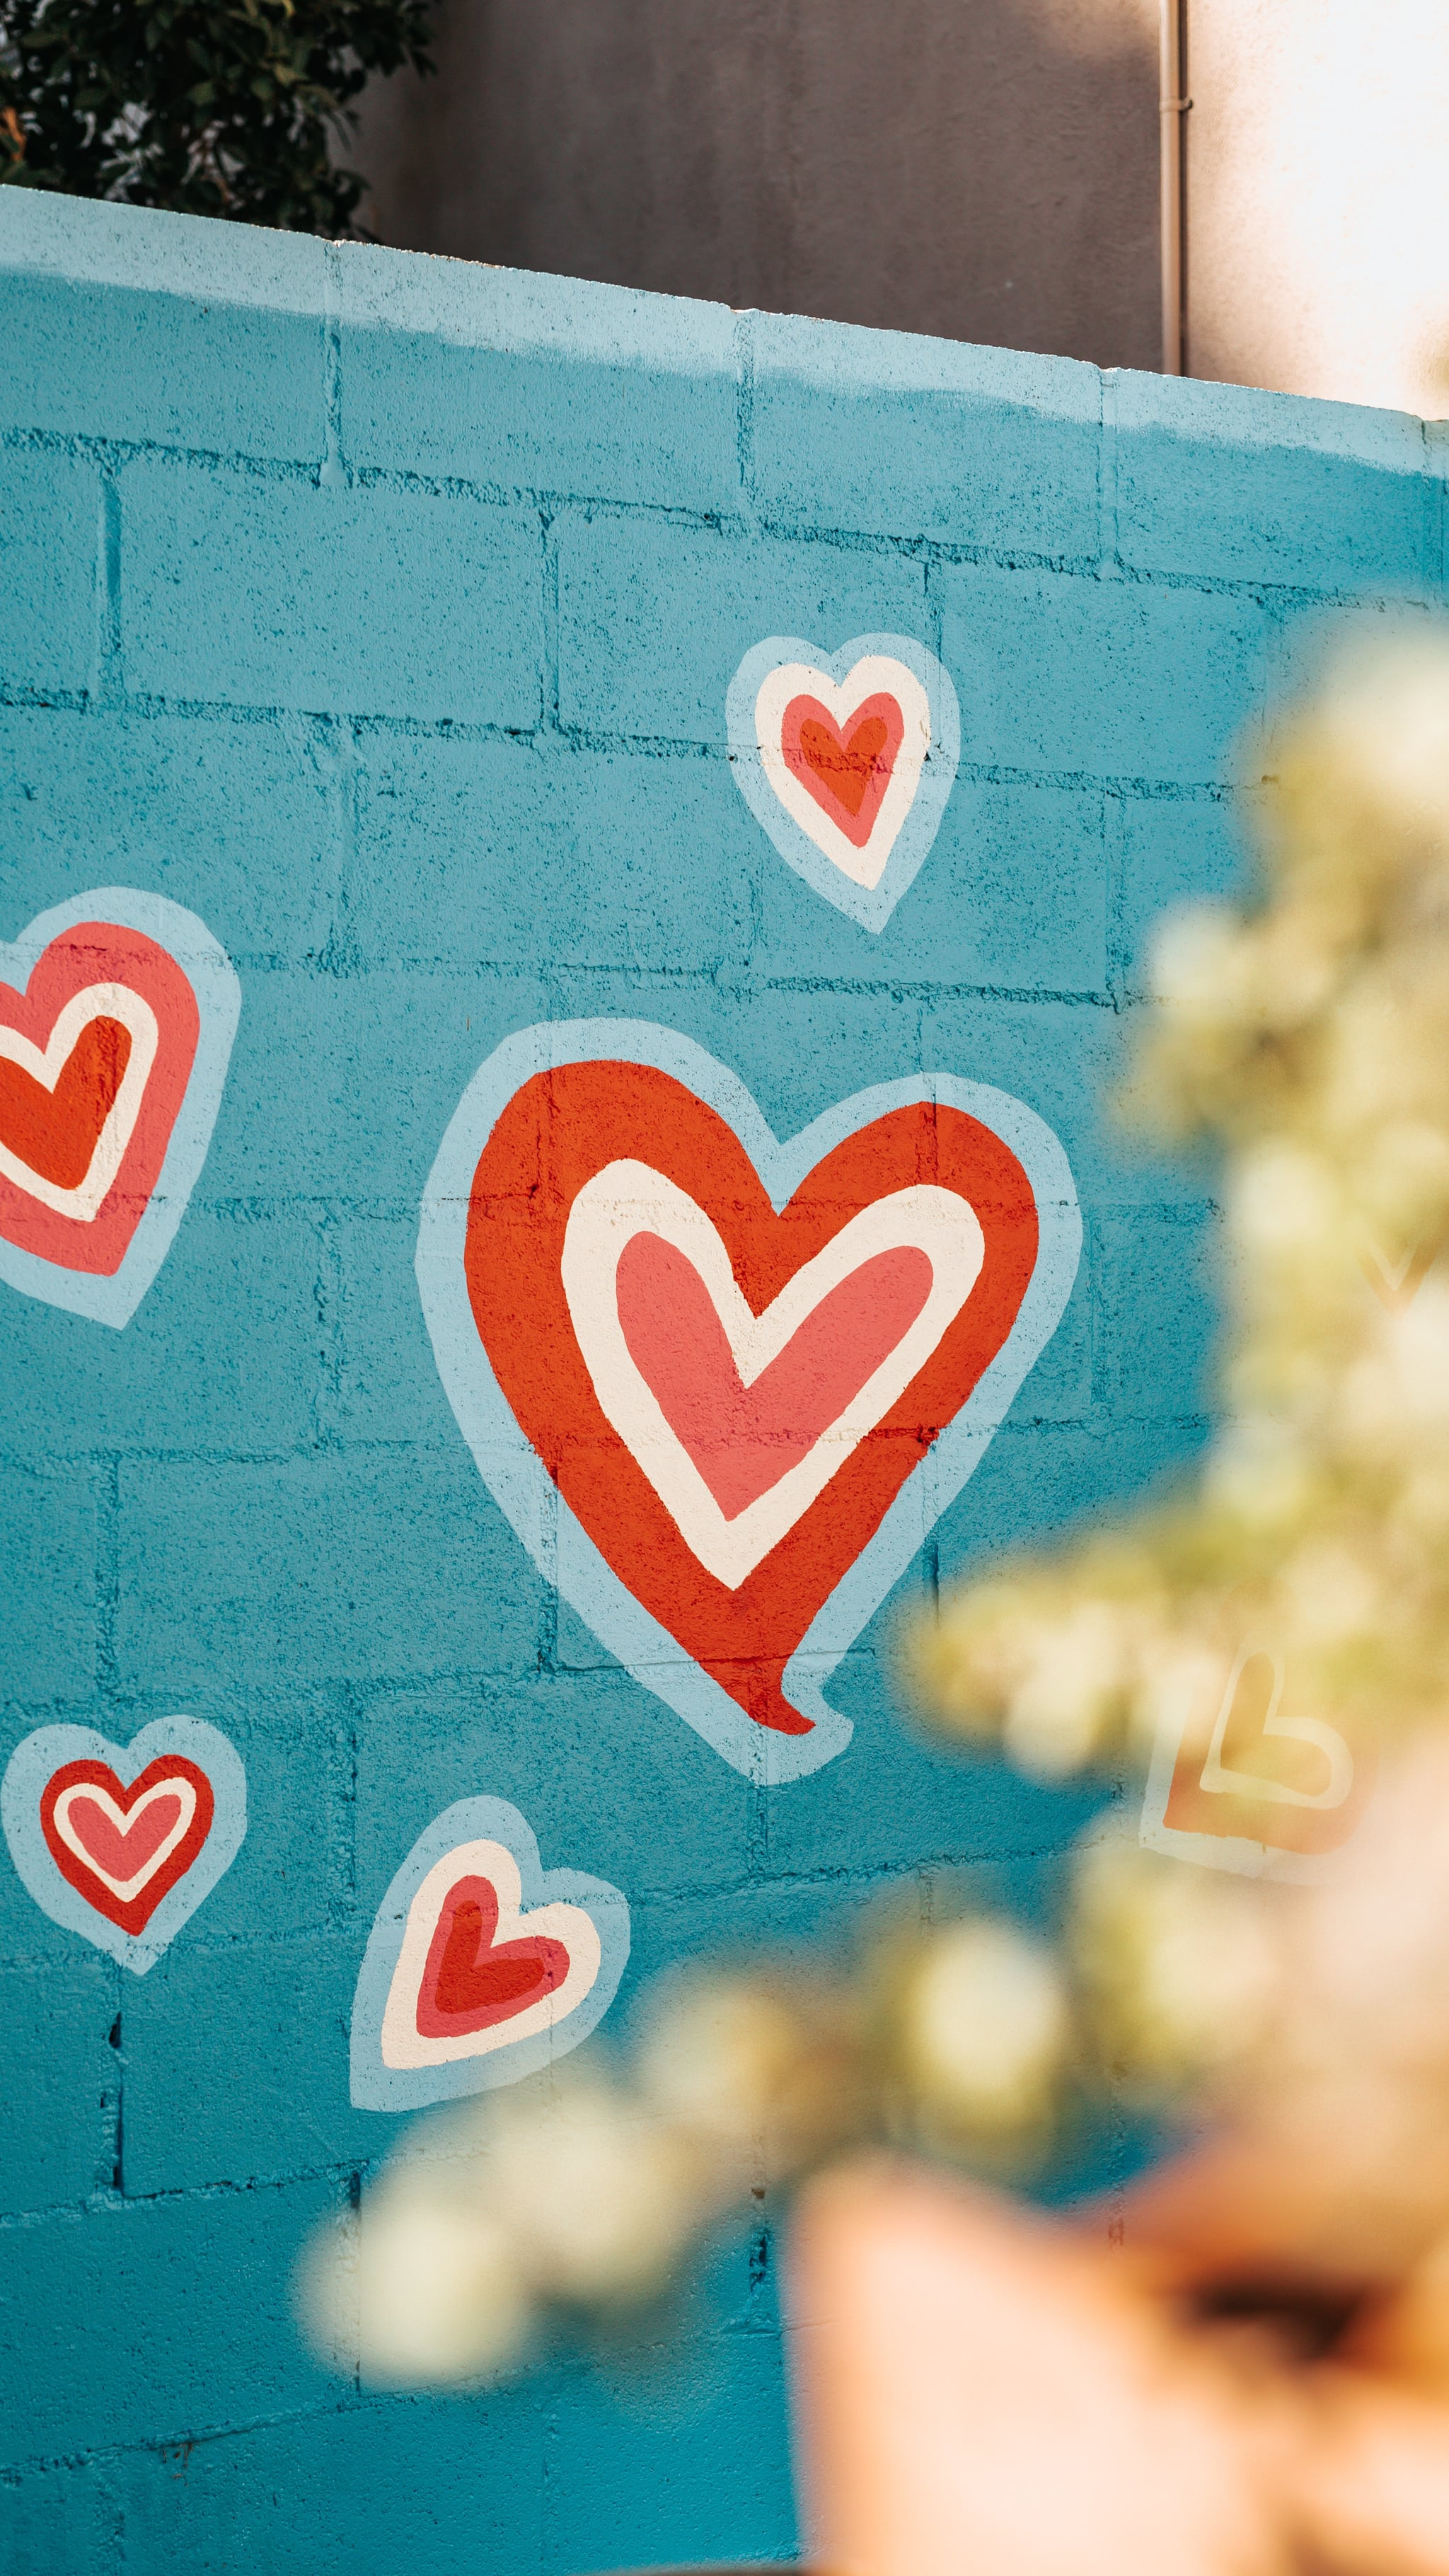 Valentine S Day Wallpapers For Your Home Screen Aesthetic Popsugar Tech